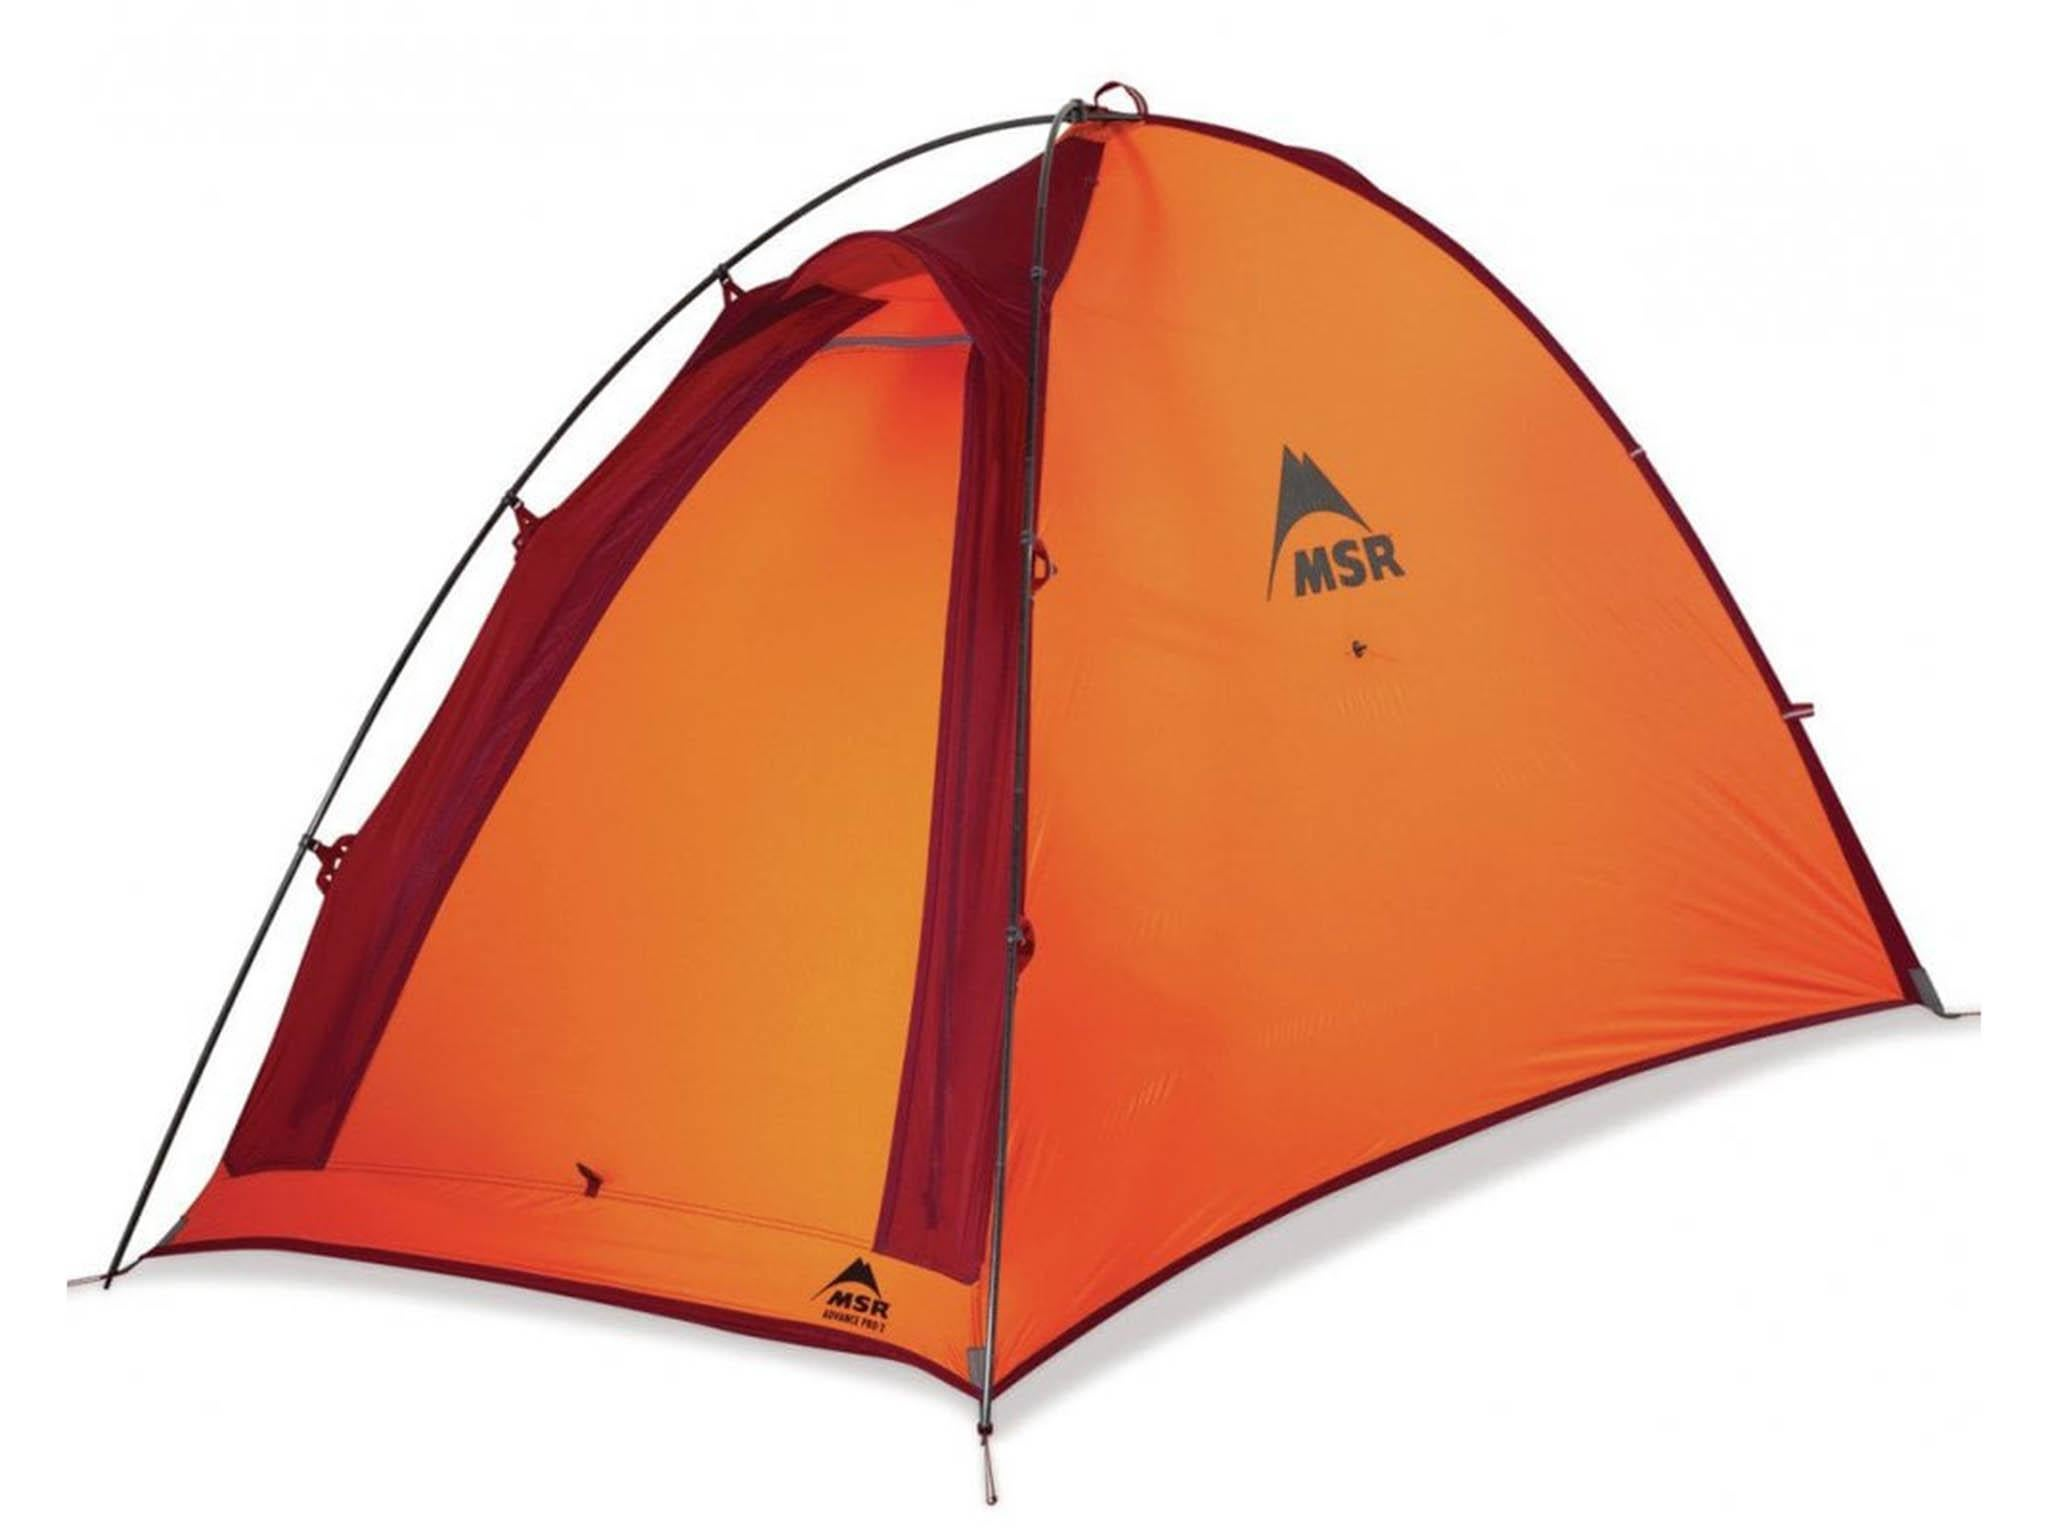 7 best winter tents | The Independent | The Independent